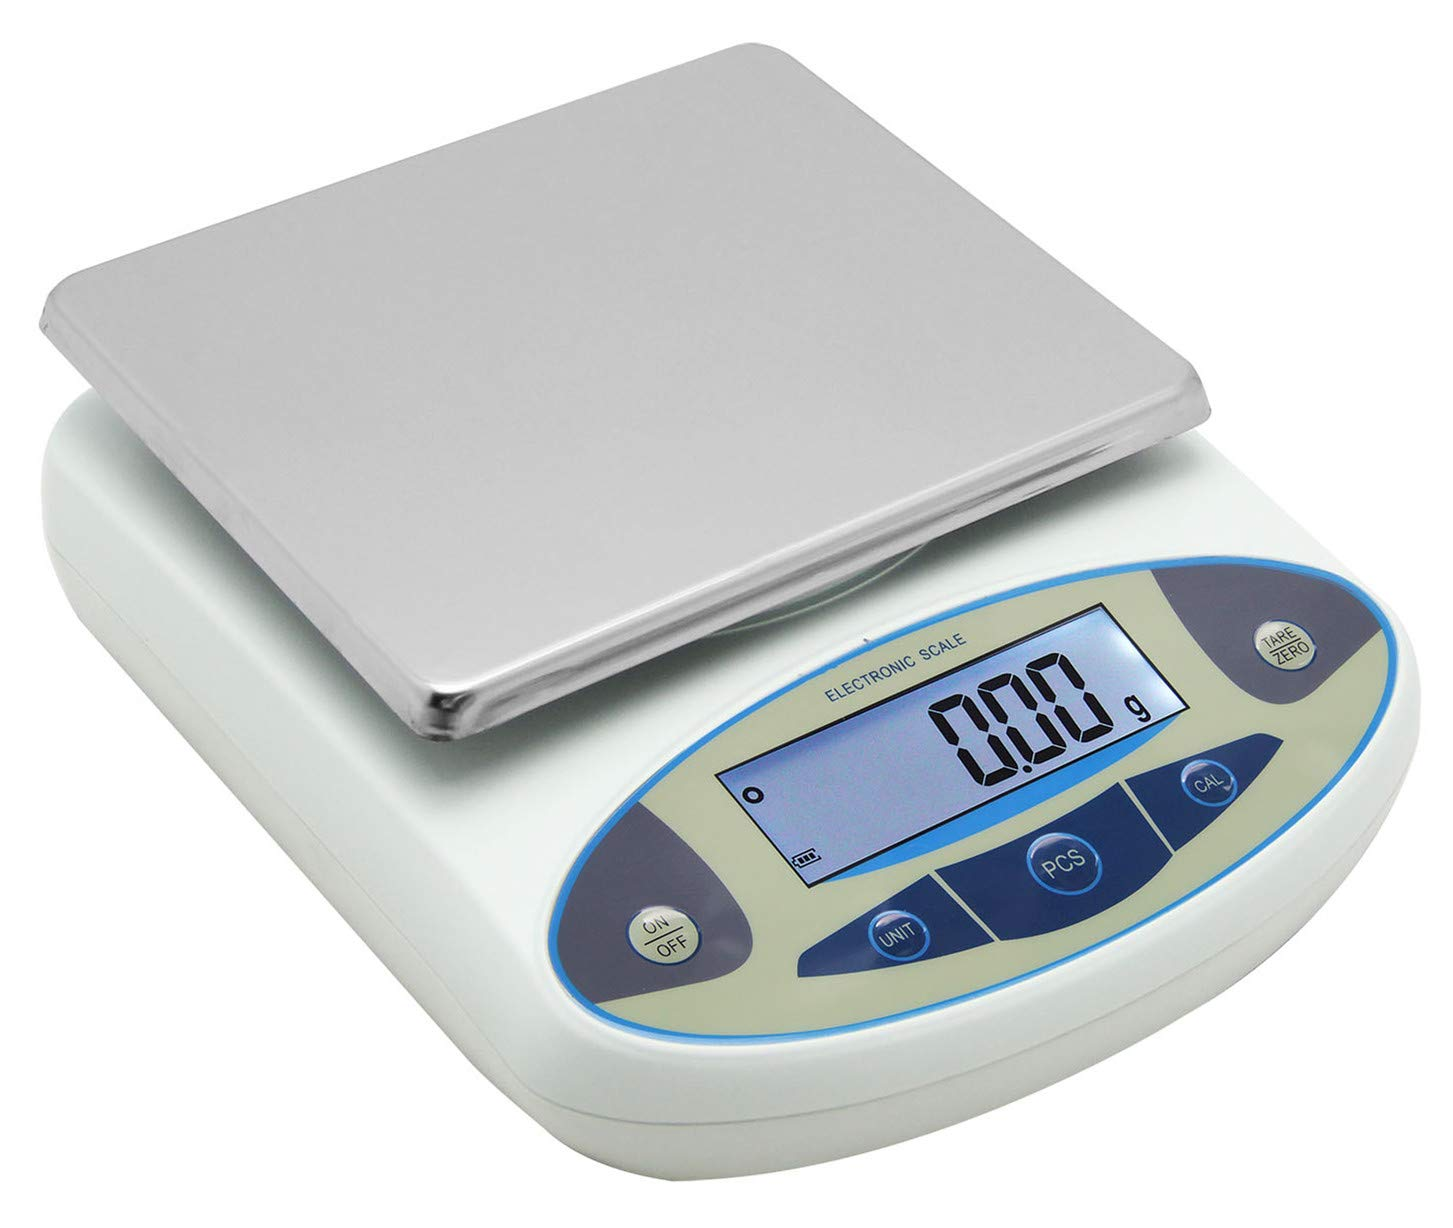 8935cf4db528 CGOLDENWALL High Precision Lab Analytical Electronic Balance Digital  Precision Scale Laboratory Precision Weighing Electronic Scales Balance  Jewelry ...